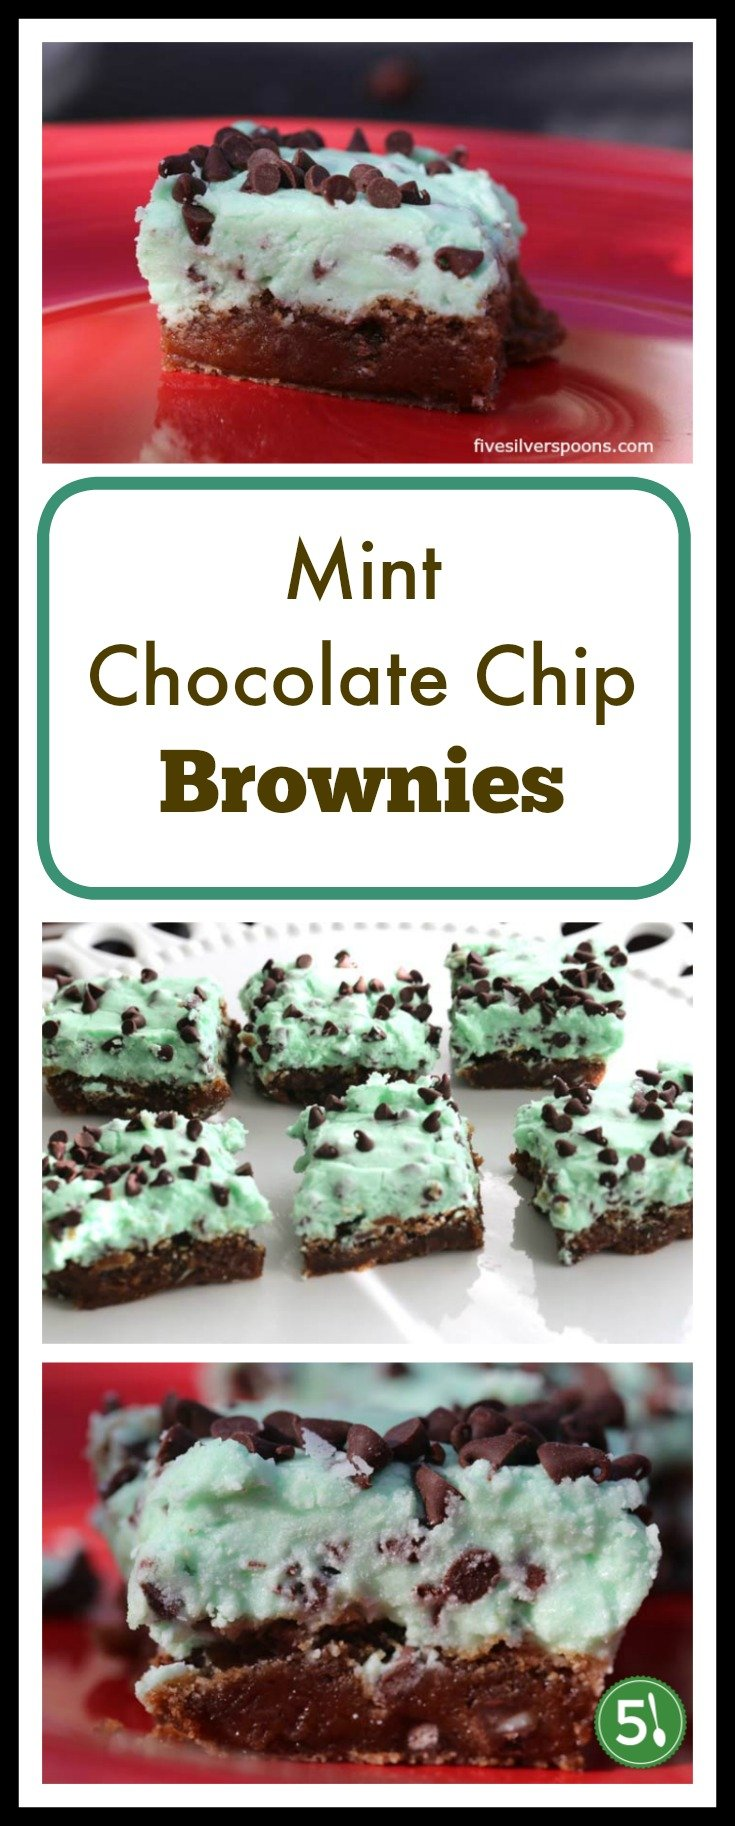 This chocolate mint brownies recipe is one of my daughter's favorite desserts.  They smell amazing while they're baking in the oven.